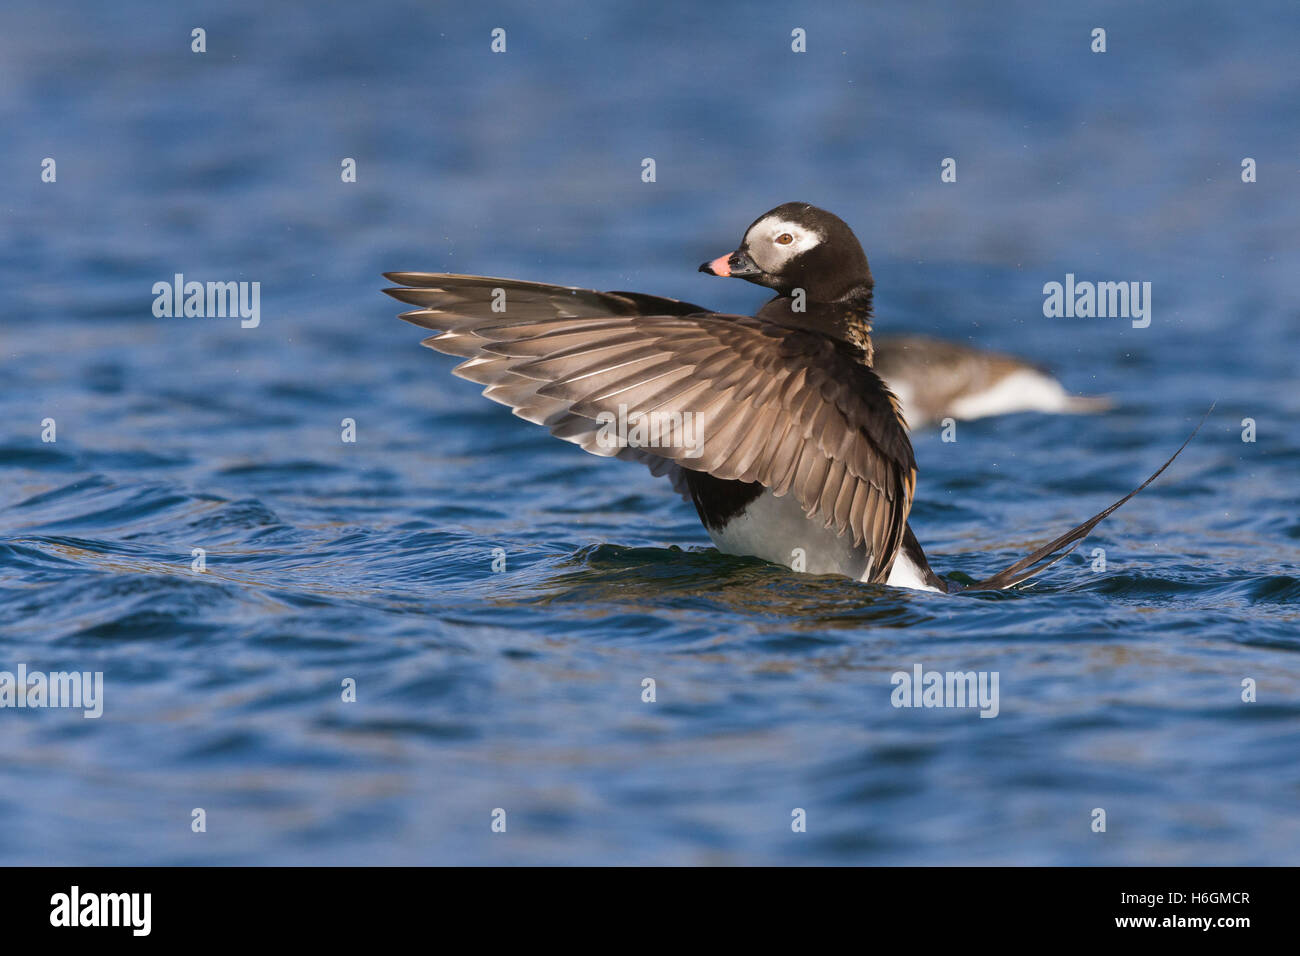 Long-tailed Duck (Clangula hyemalis), adult male flapping wings in the water - Stock Image